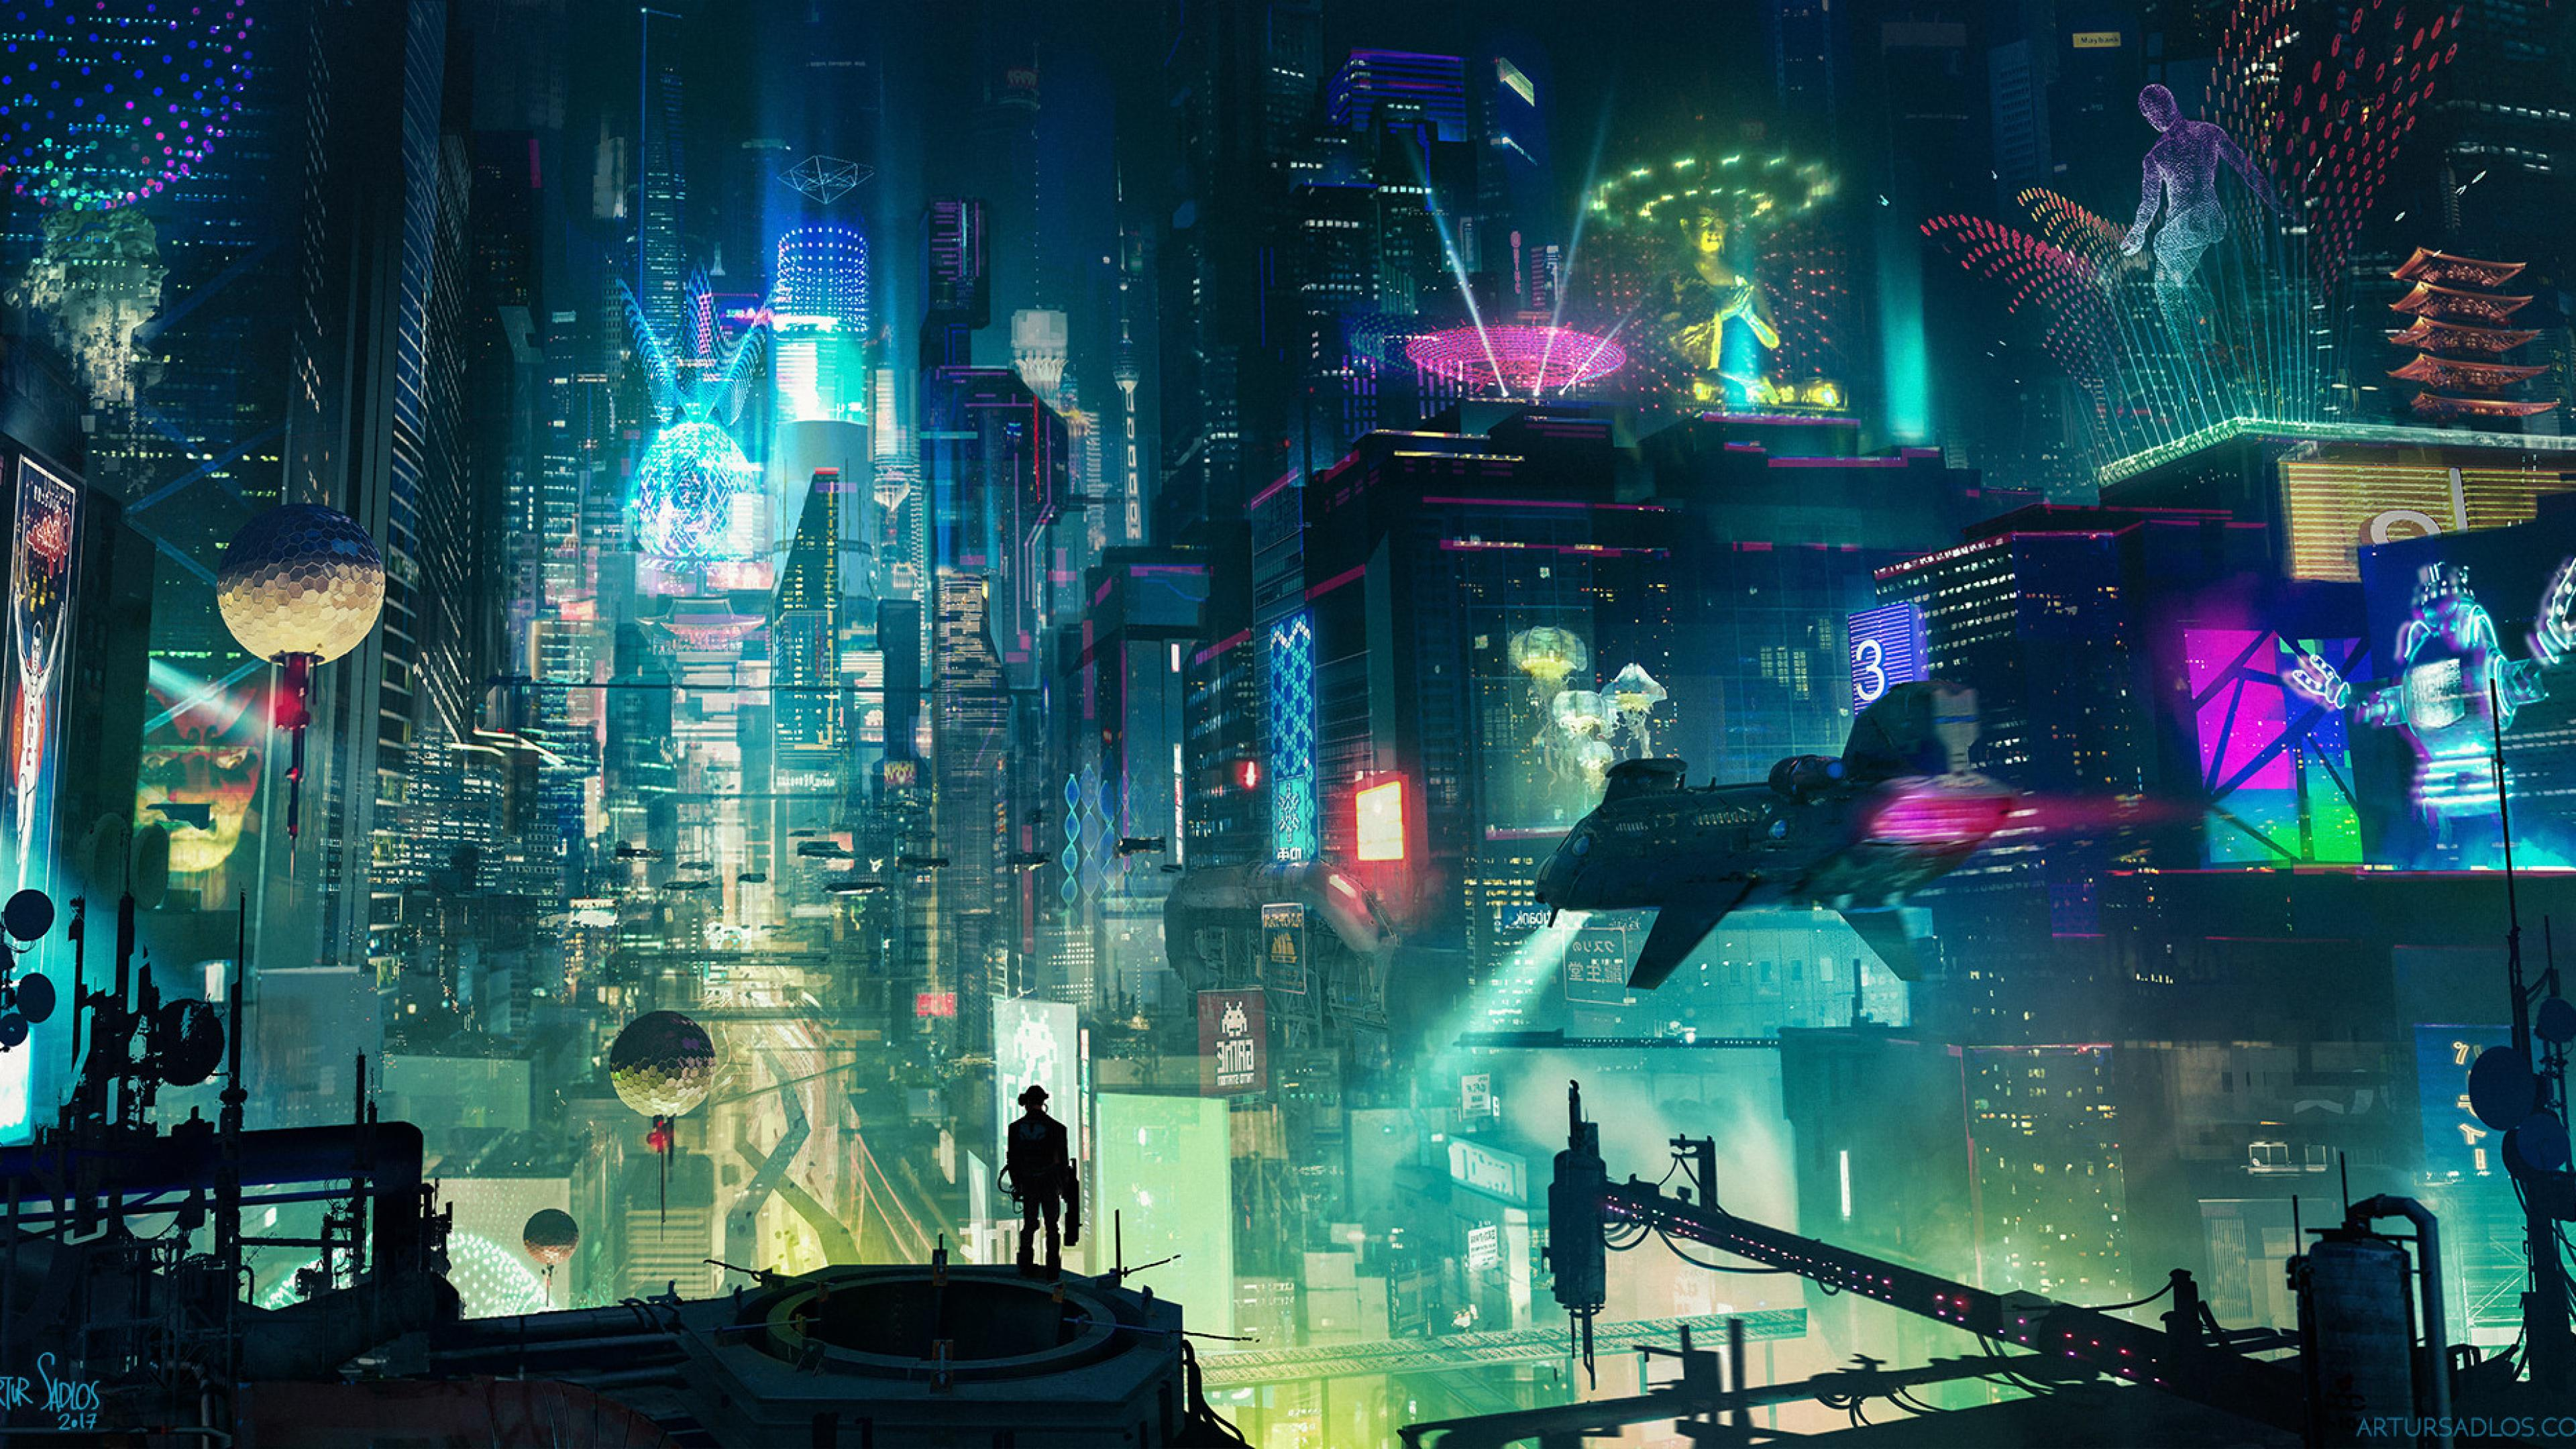 3840x2160 - Sci Fi City Wallpapers 12